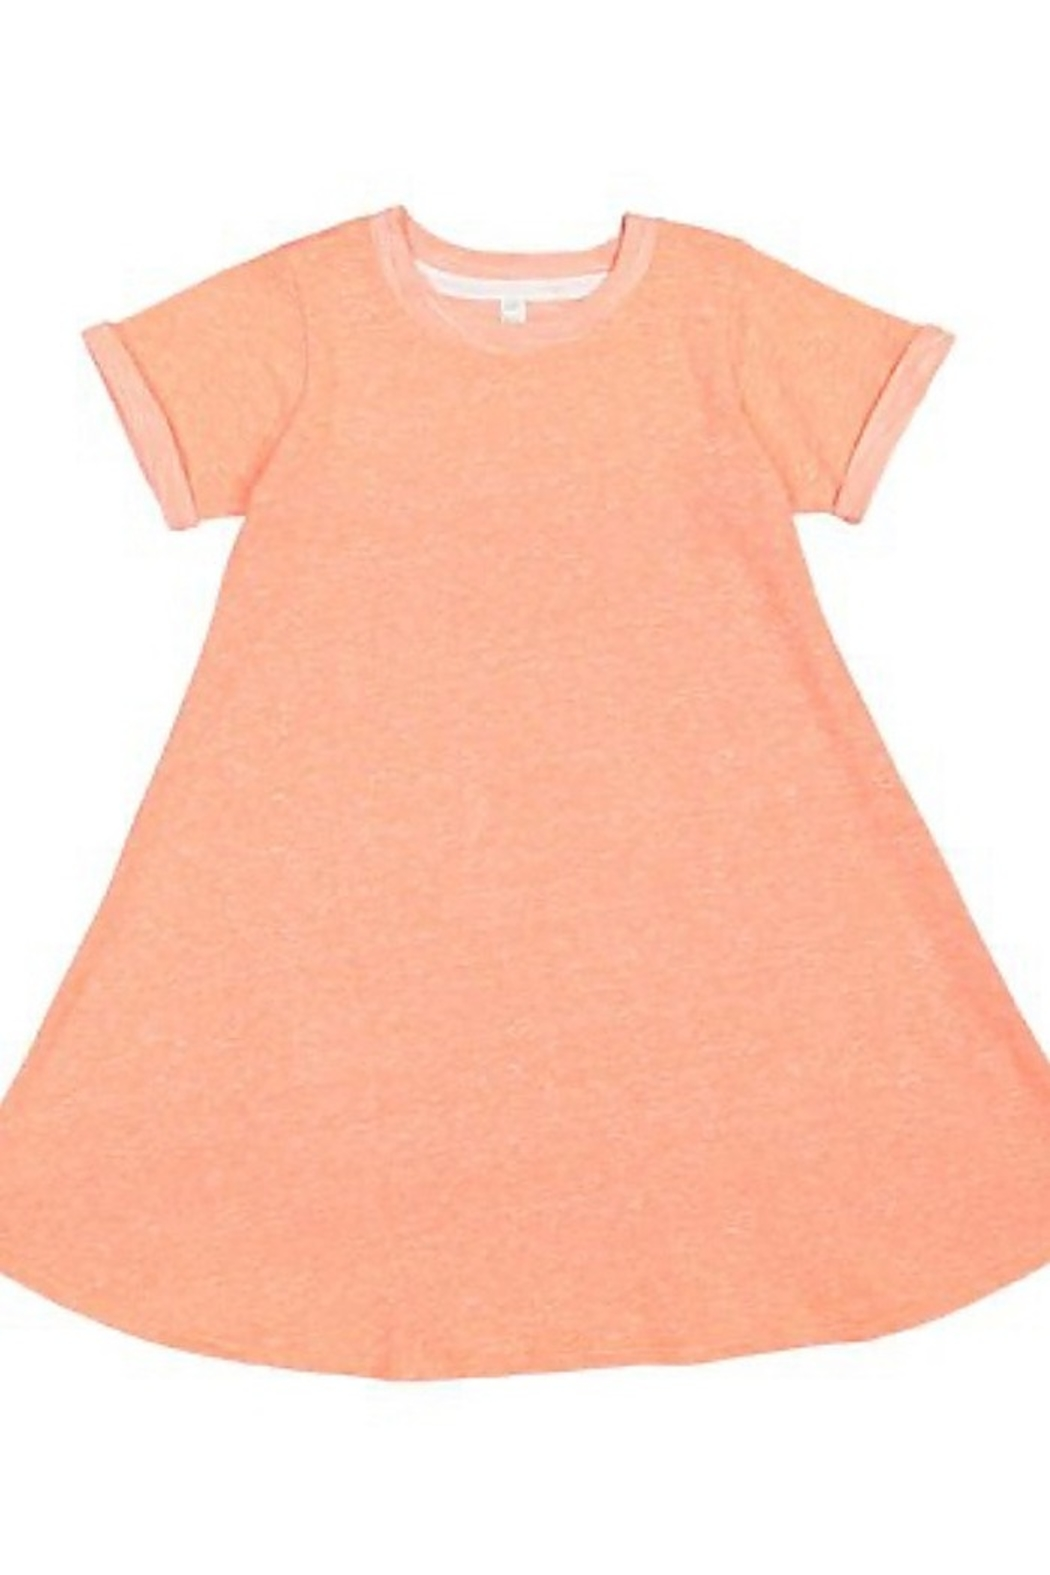 LAT GIRLS MELANGE FRENCH TERRY DRESS - Front Cropped Image